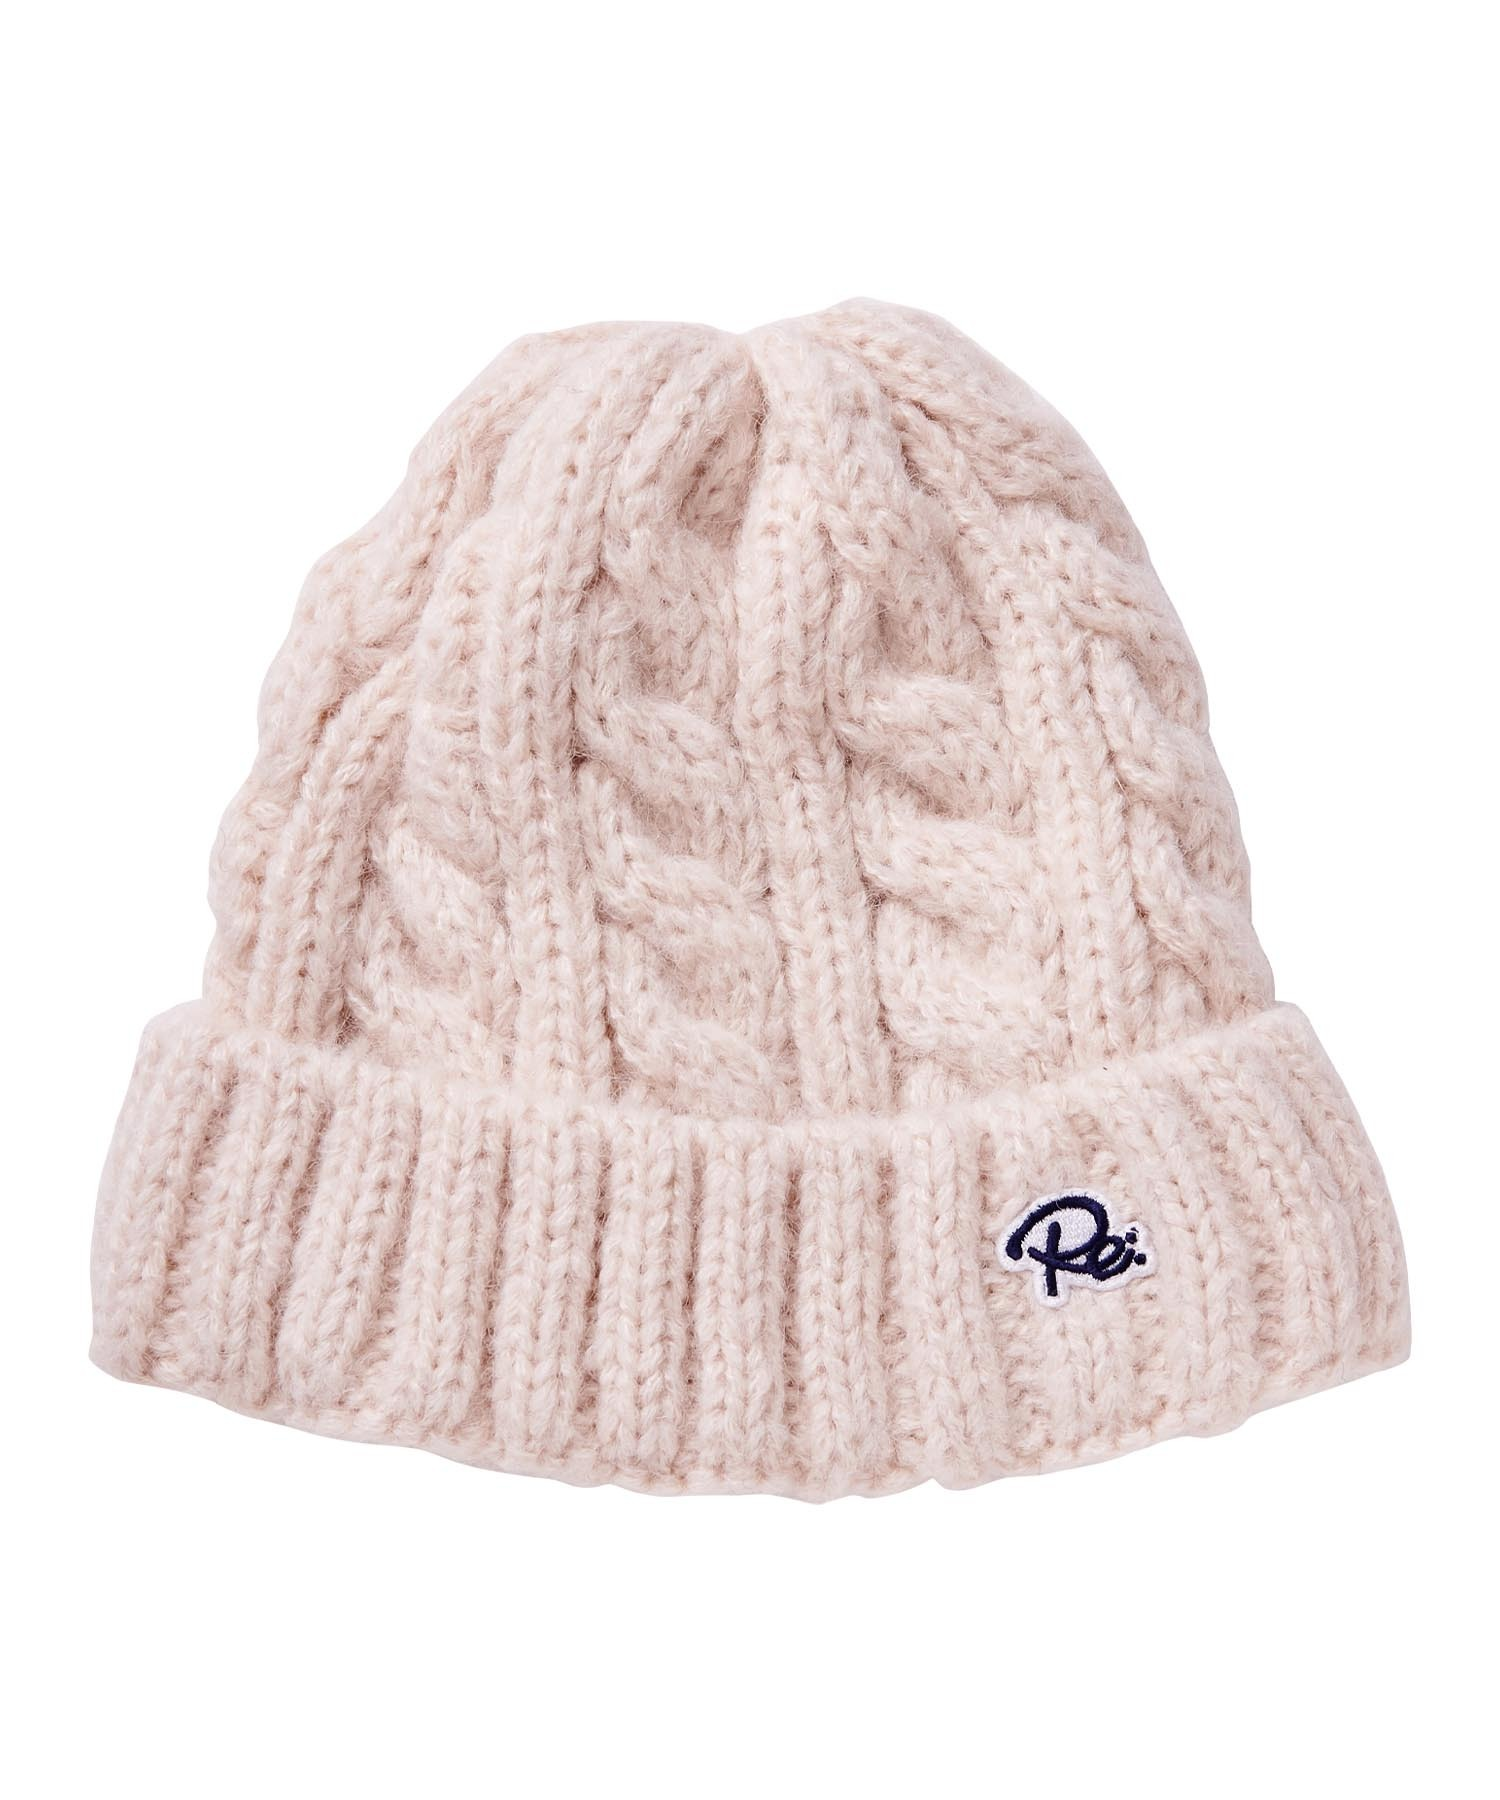 Re: CABLE KNIT CAP[REH096]